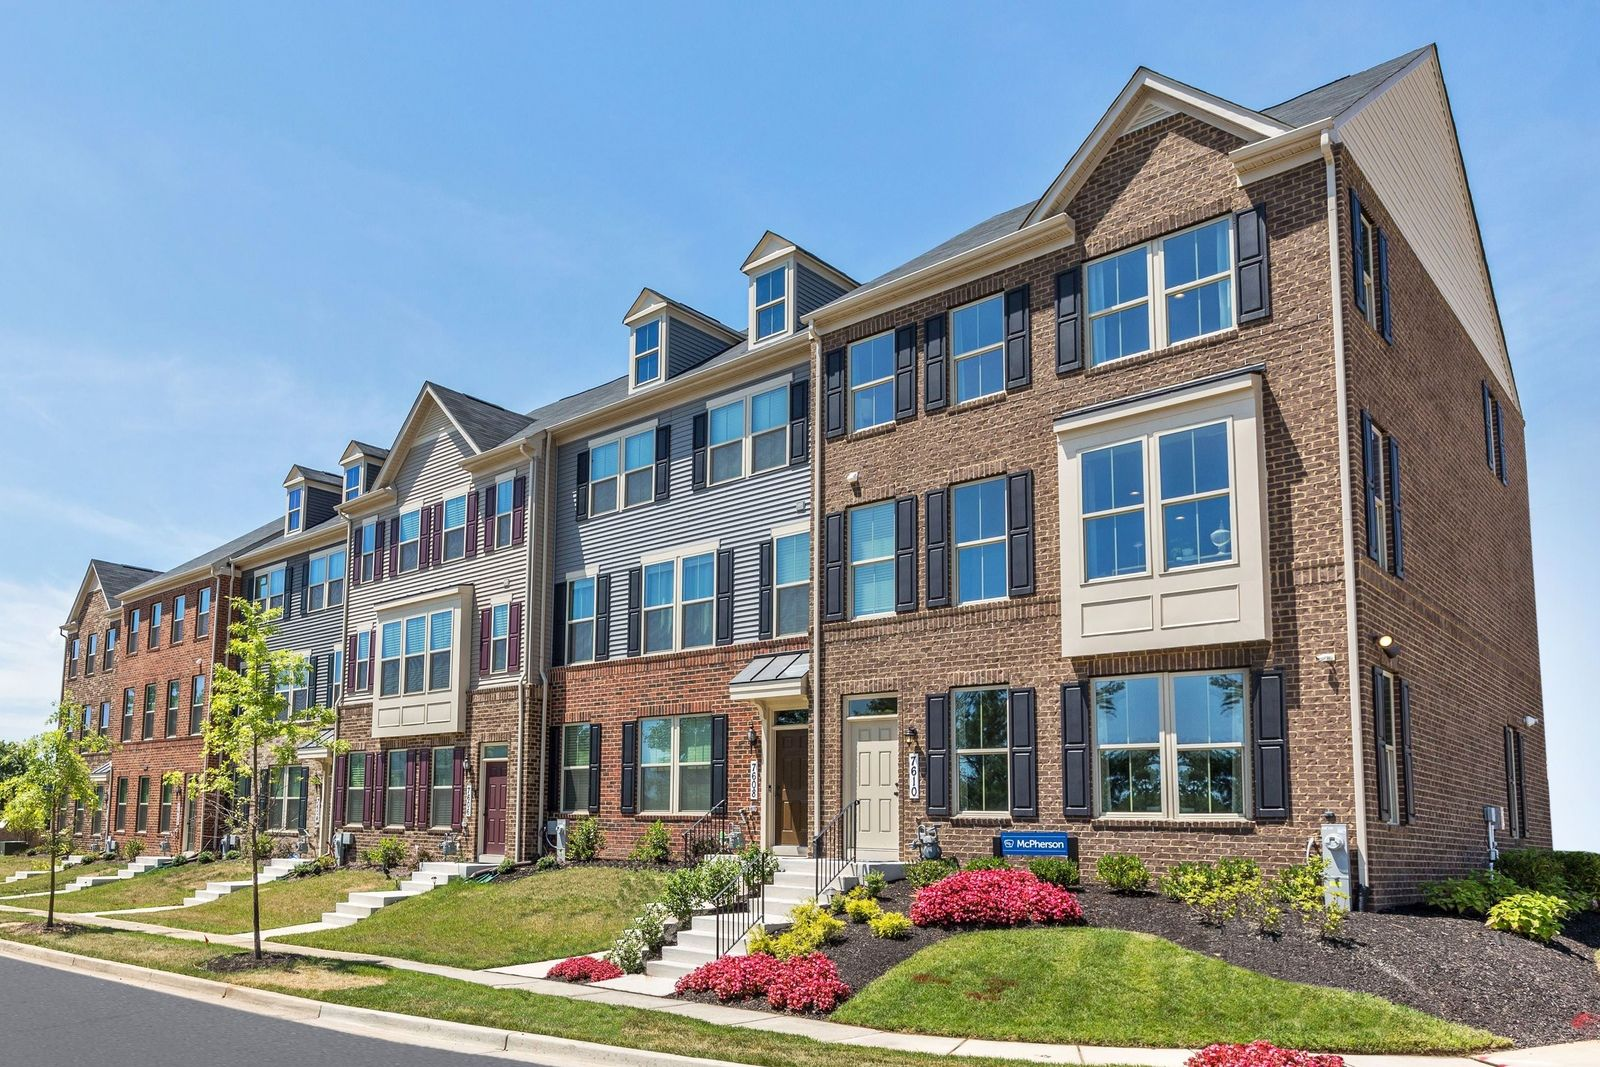 WELCOME TO BLACKBURN, TOWNHOMES FROM THE LOW $500S!:We are open and taking extra precautions for your safety. Click hereto schedule an in-person visit, or meet with us virtually on the app of your choice.